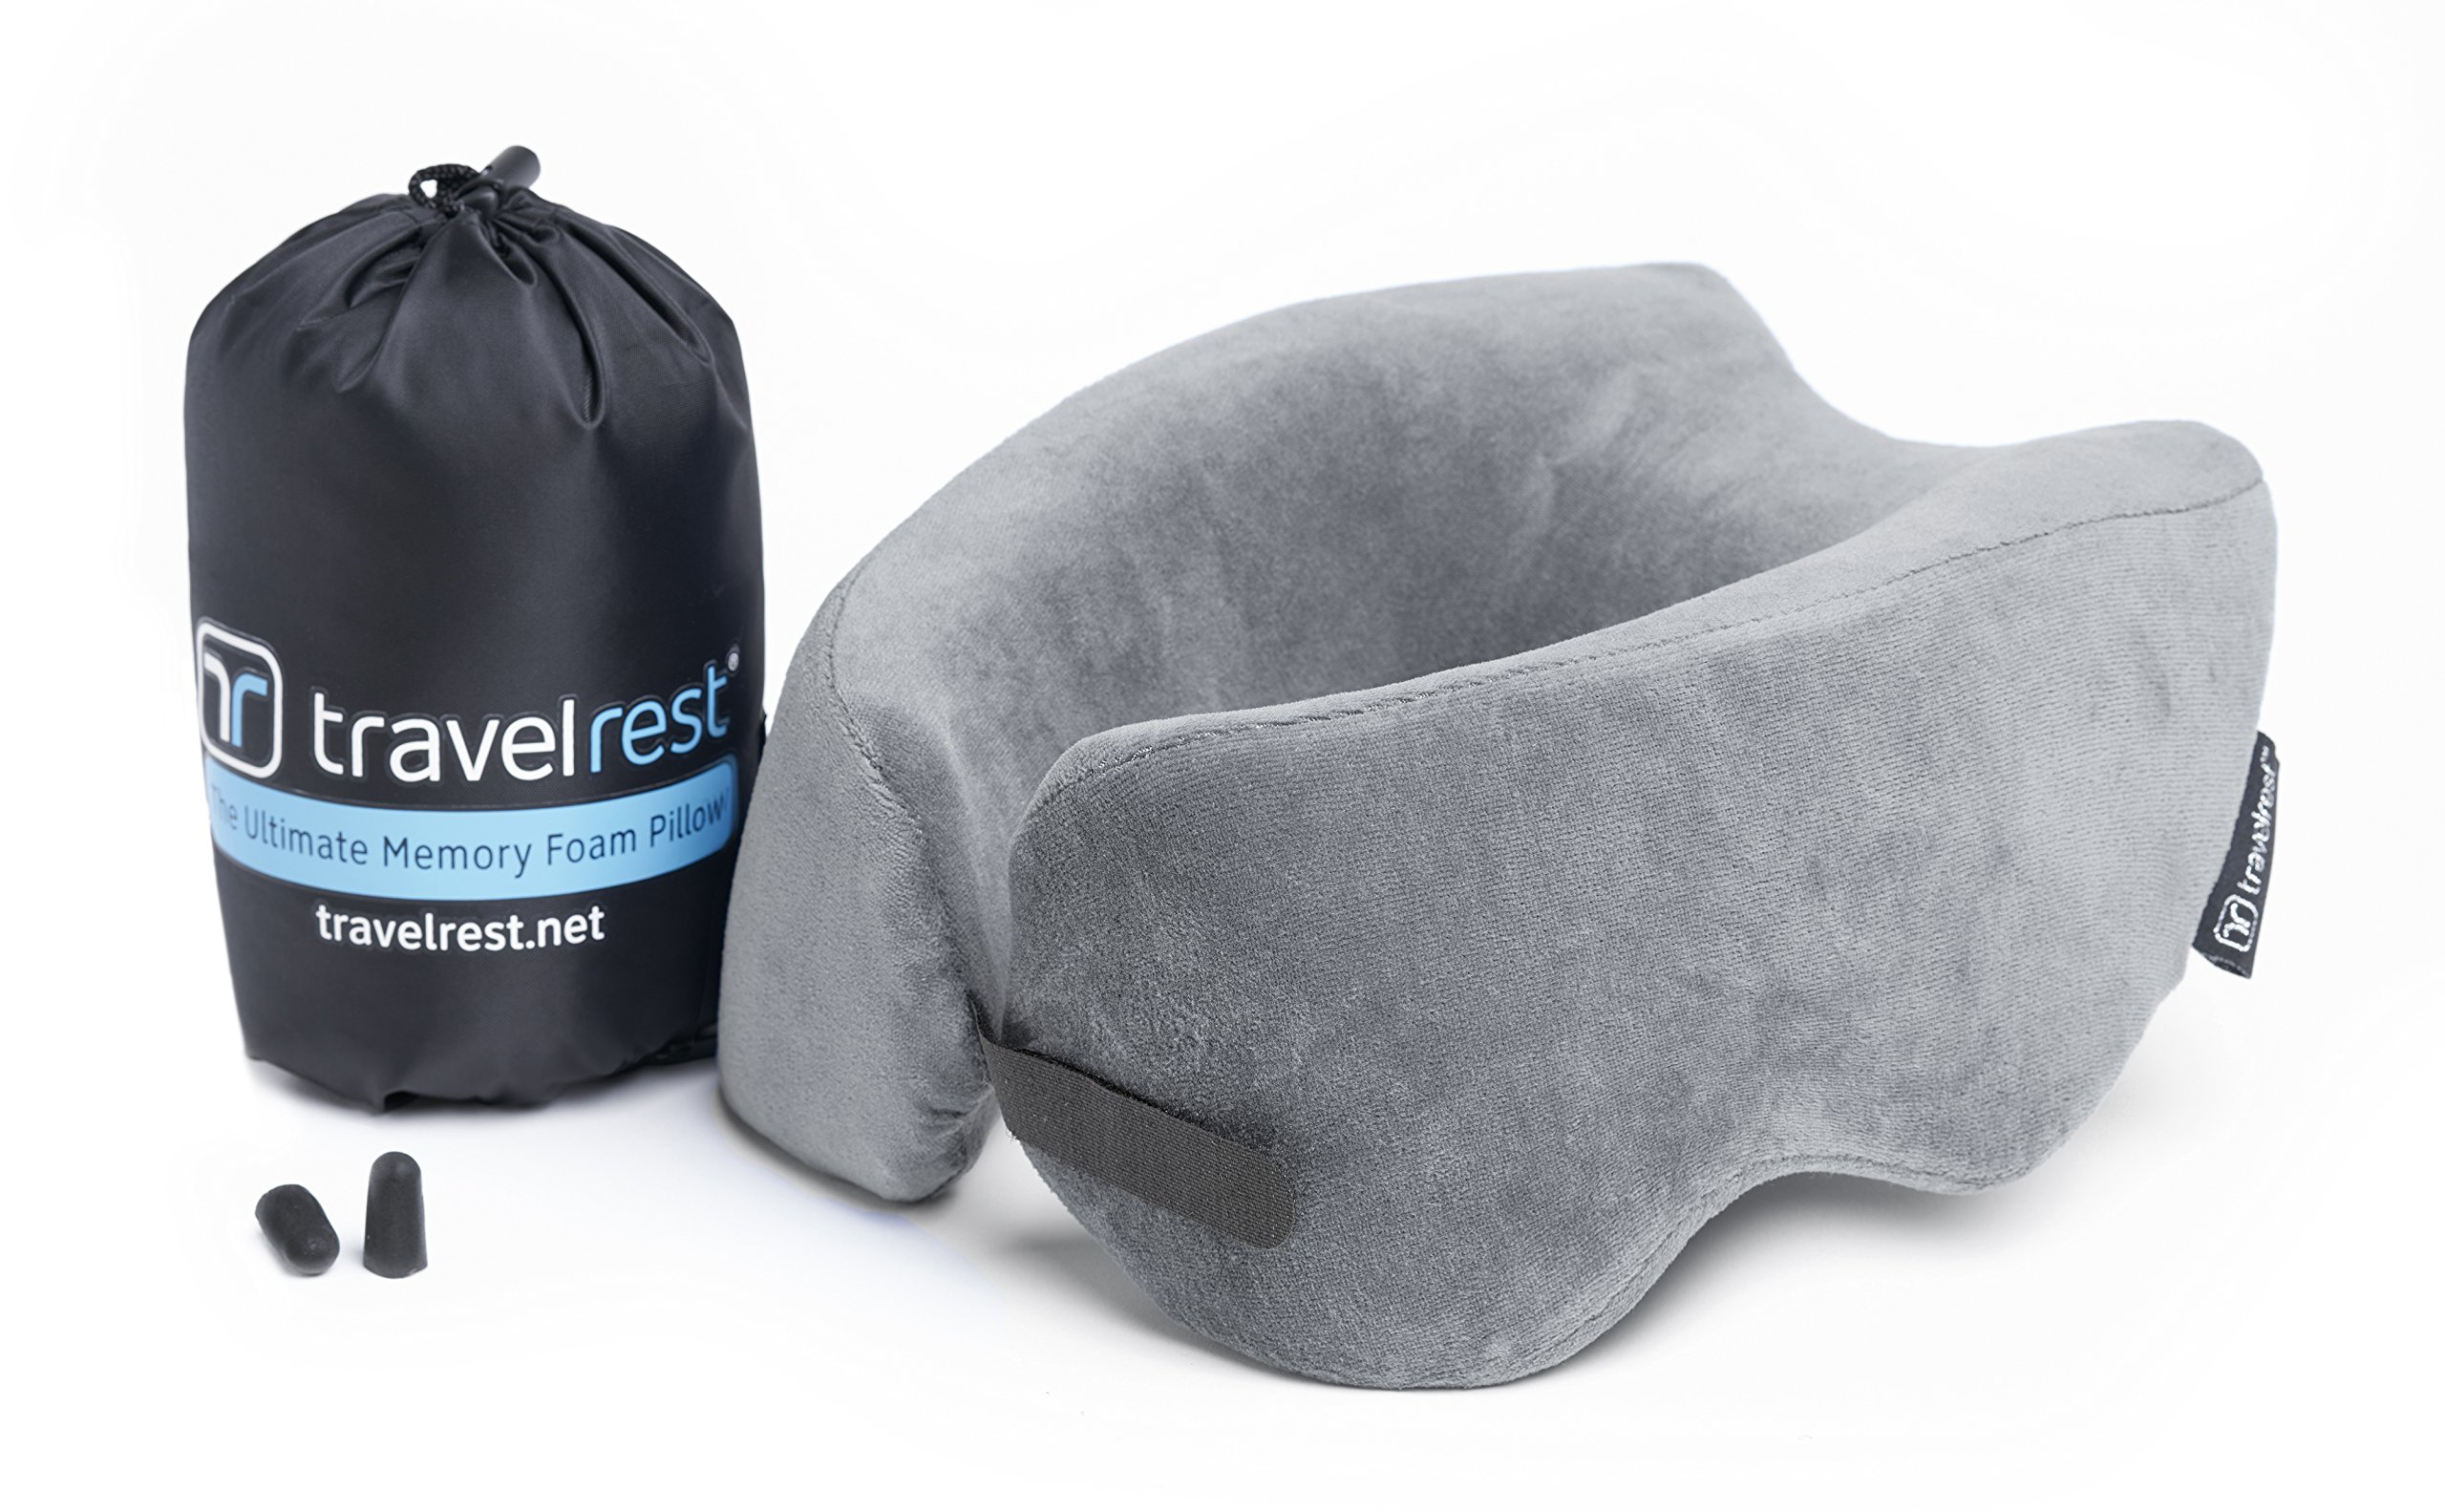 Travelrest Ultimate Memory Foam Travel Pillow/Neck Pillow - Therapeutic, Ergonomic & Patented - Washable Cover - Most Comfortable Neck Pillow - Compresses to 1/4 of its Size (2 Year Warranty) (Grey) by Travelrest